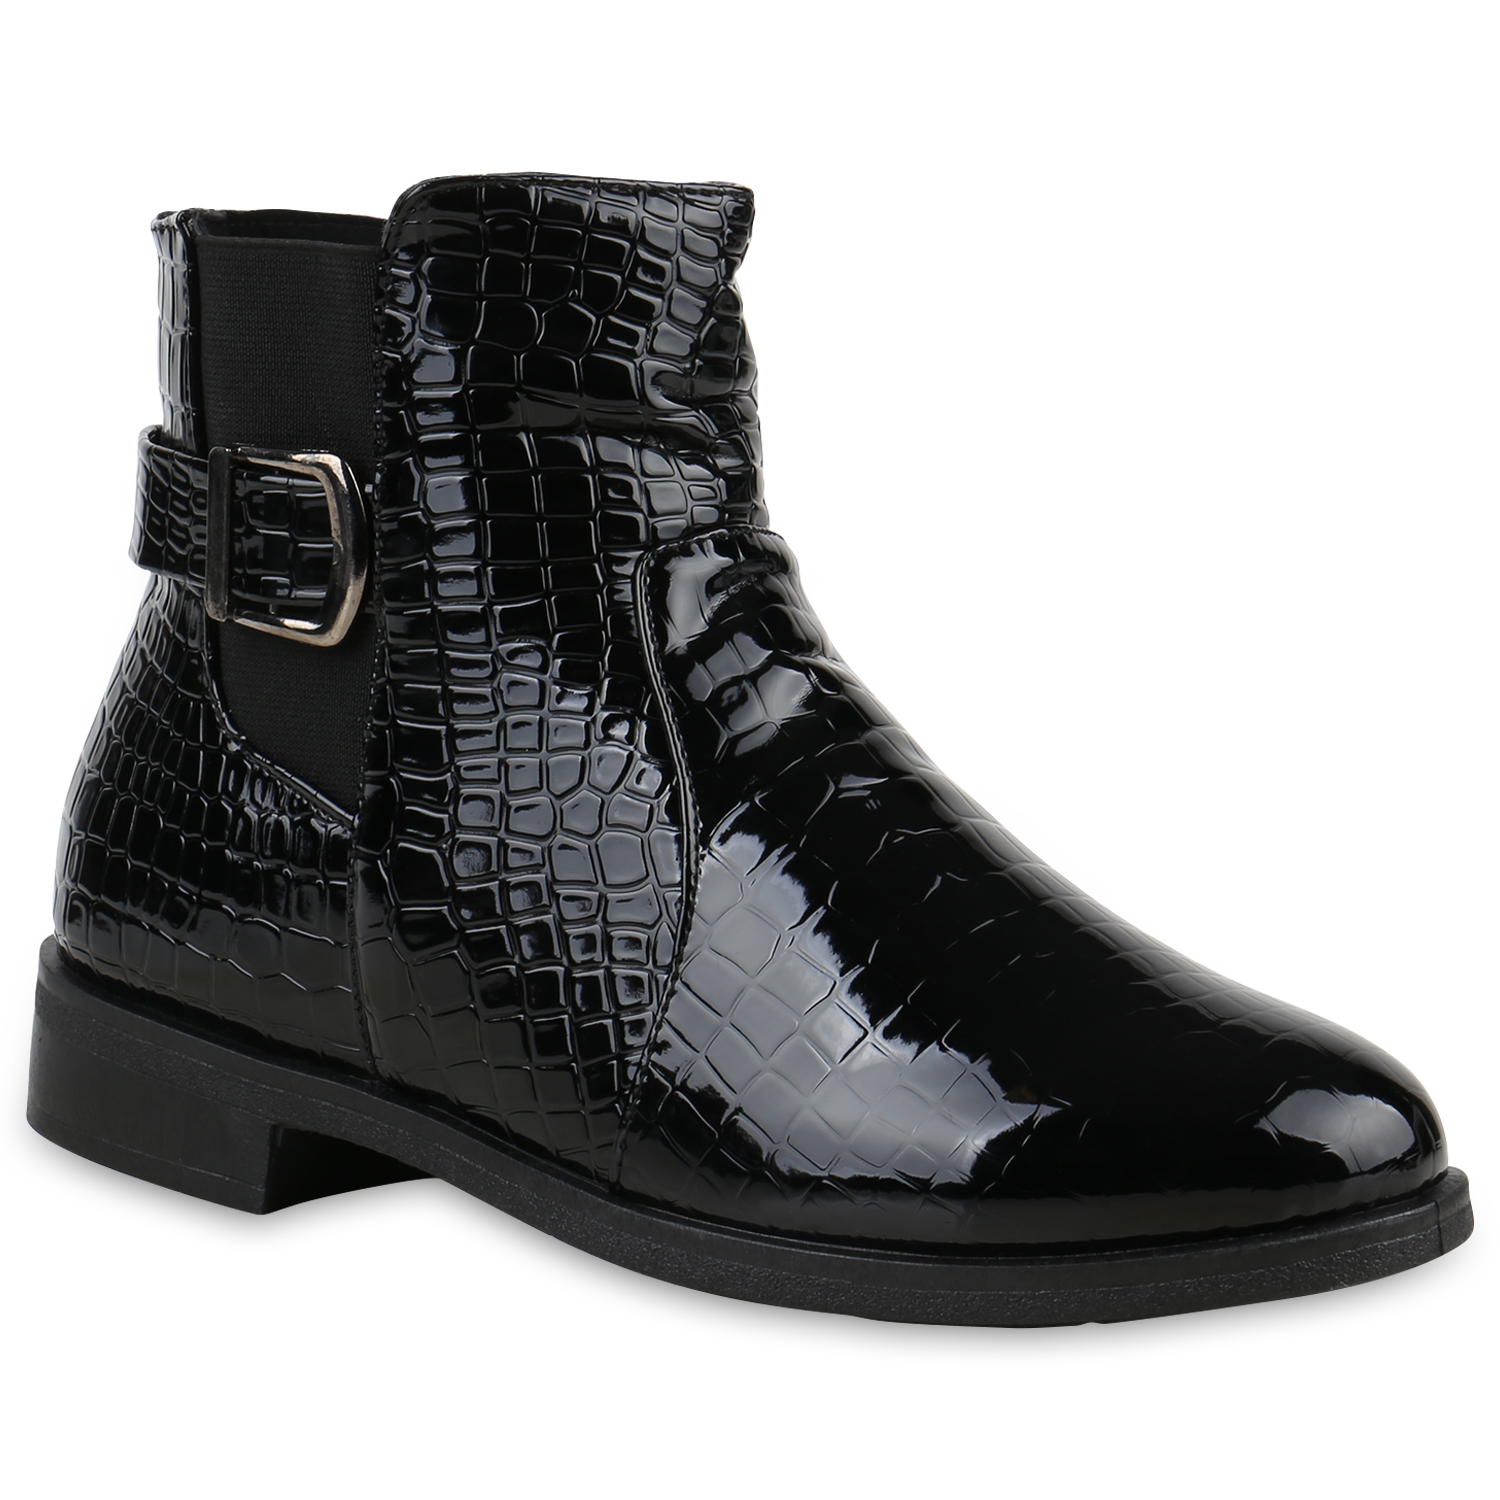 klassische damen stiefeletten lack schuhe kroko gef tterte 812239 ebay. Black Bedroom Furniture Sets. Home Design Ideas